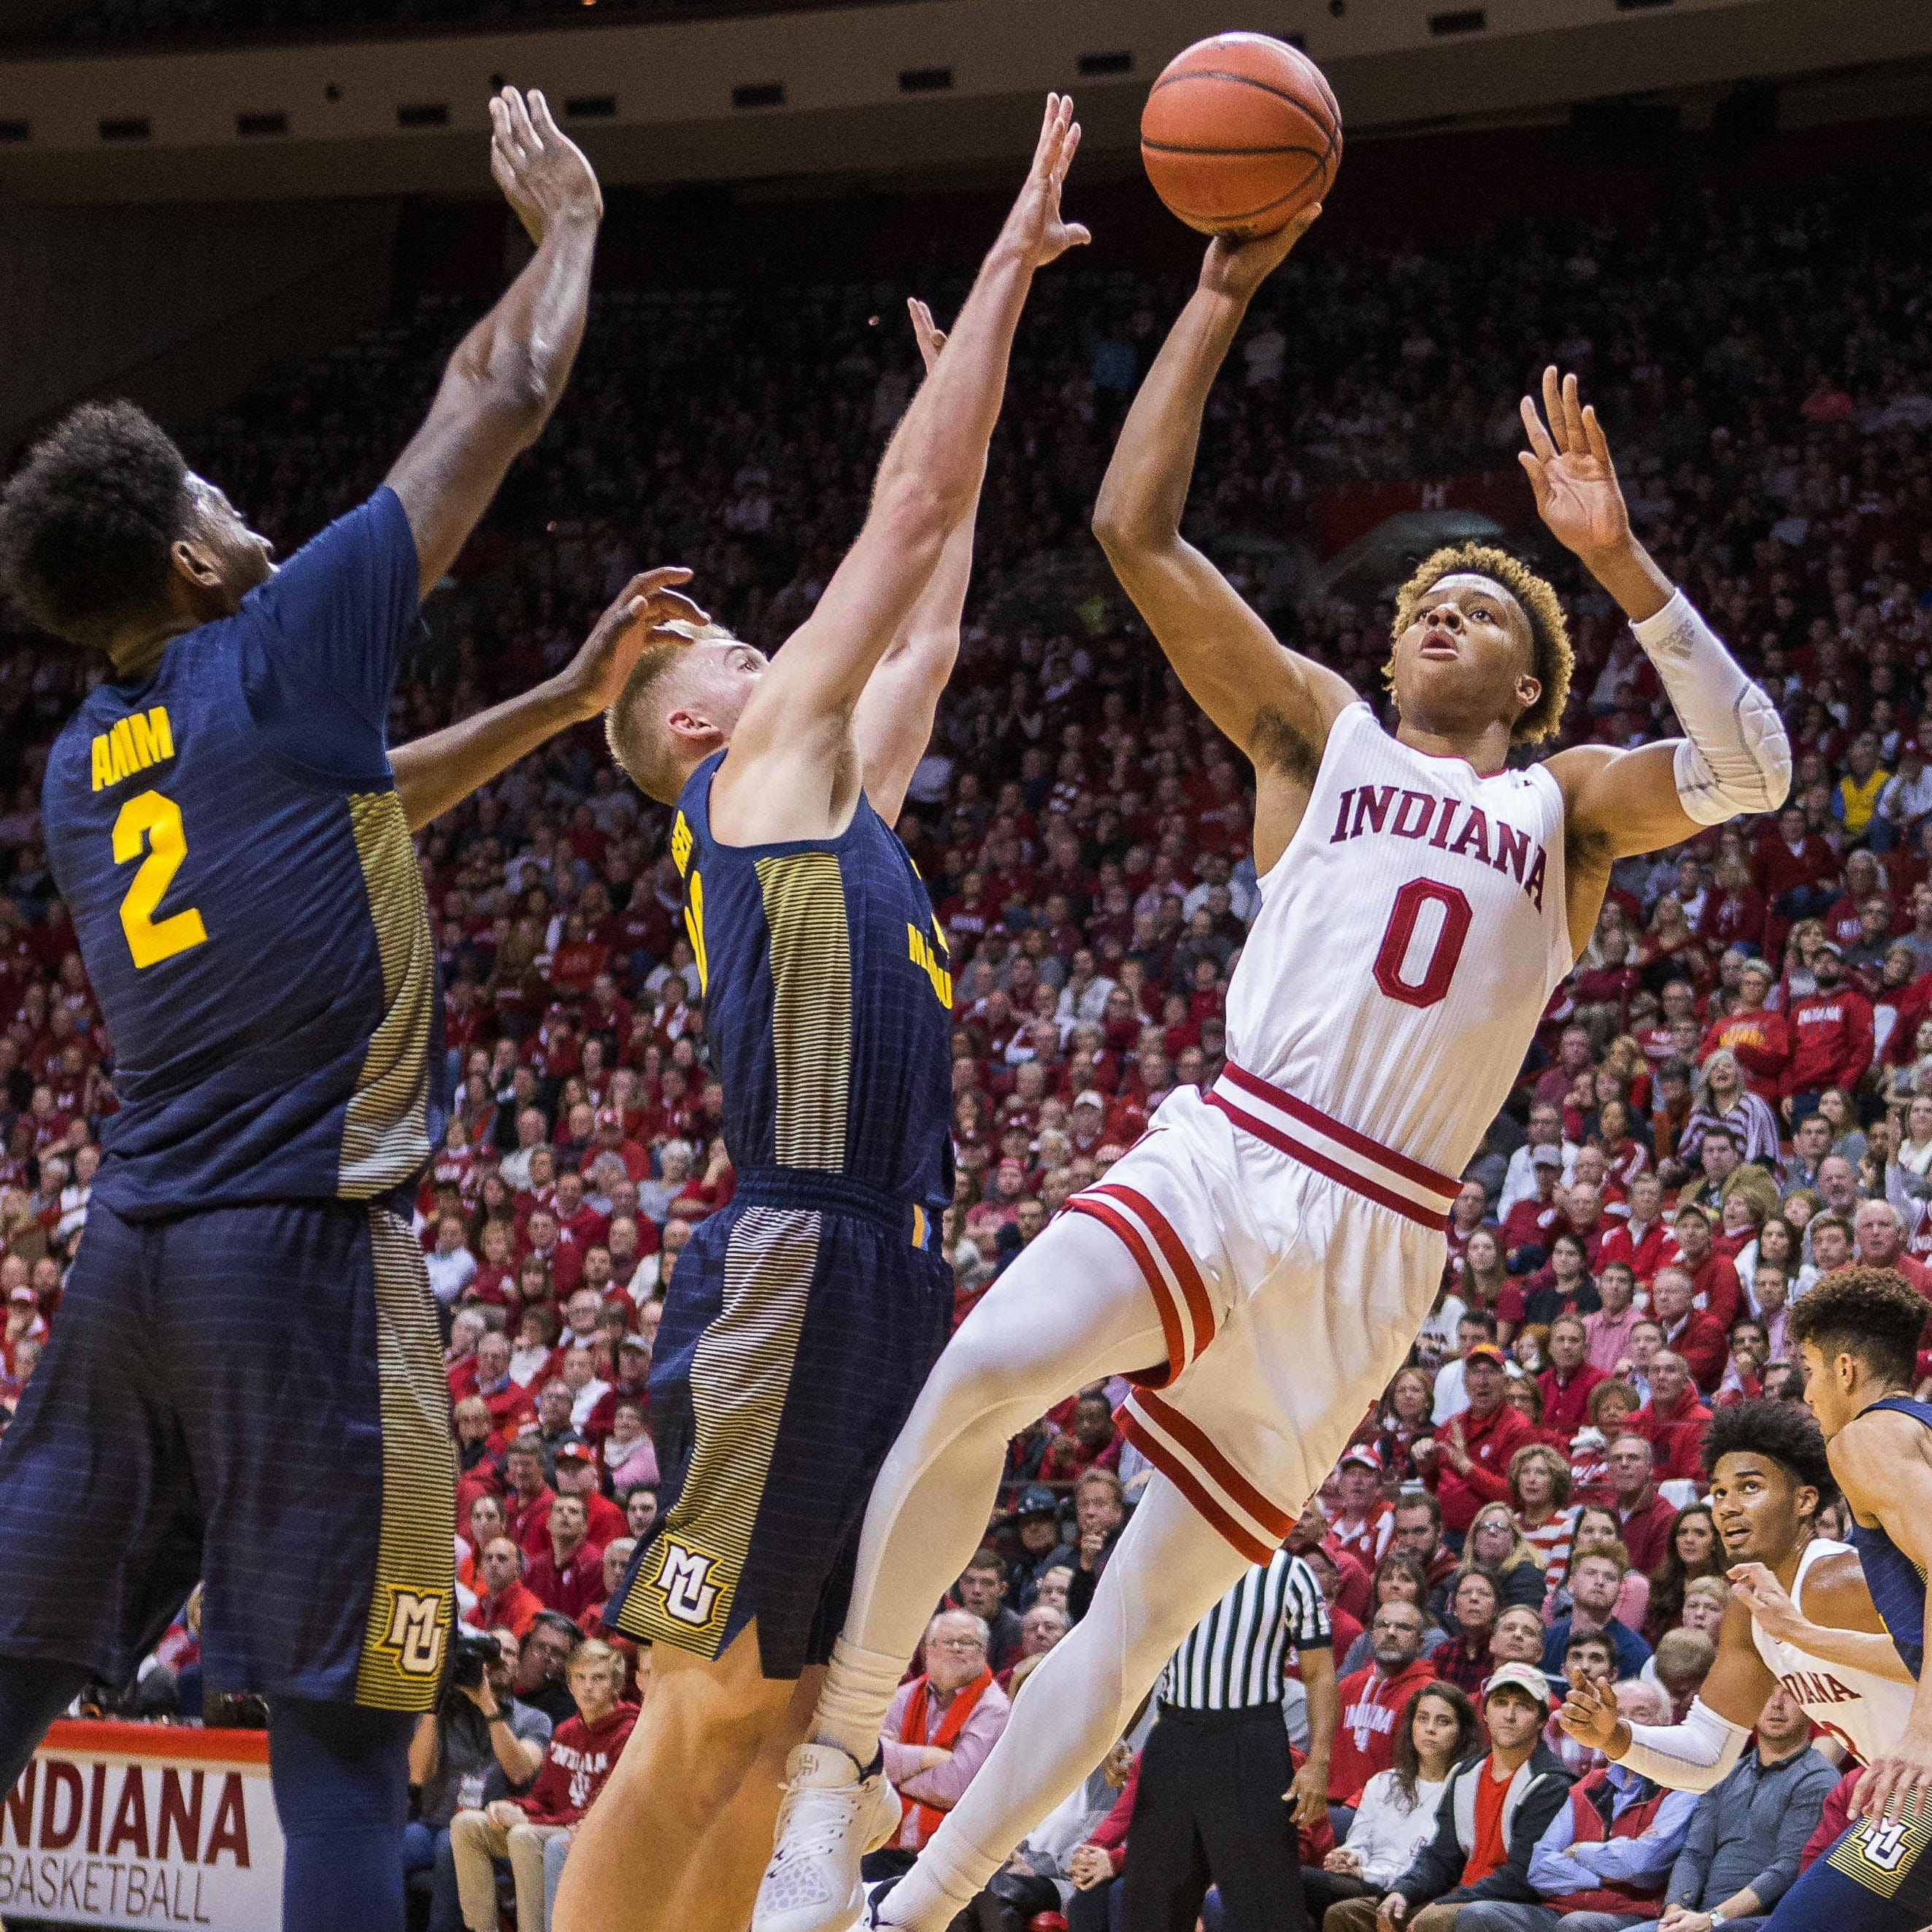 Indiana 96, Marquette 73: Golden Eagles are dominated from the start